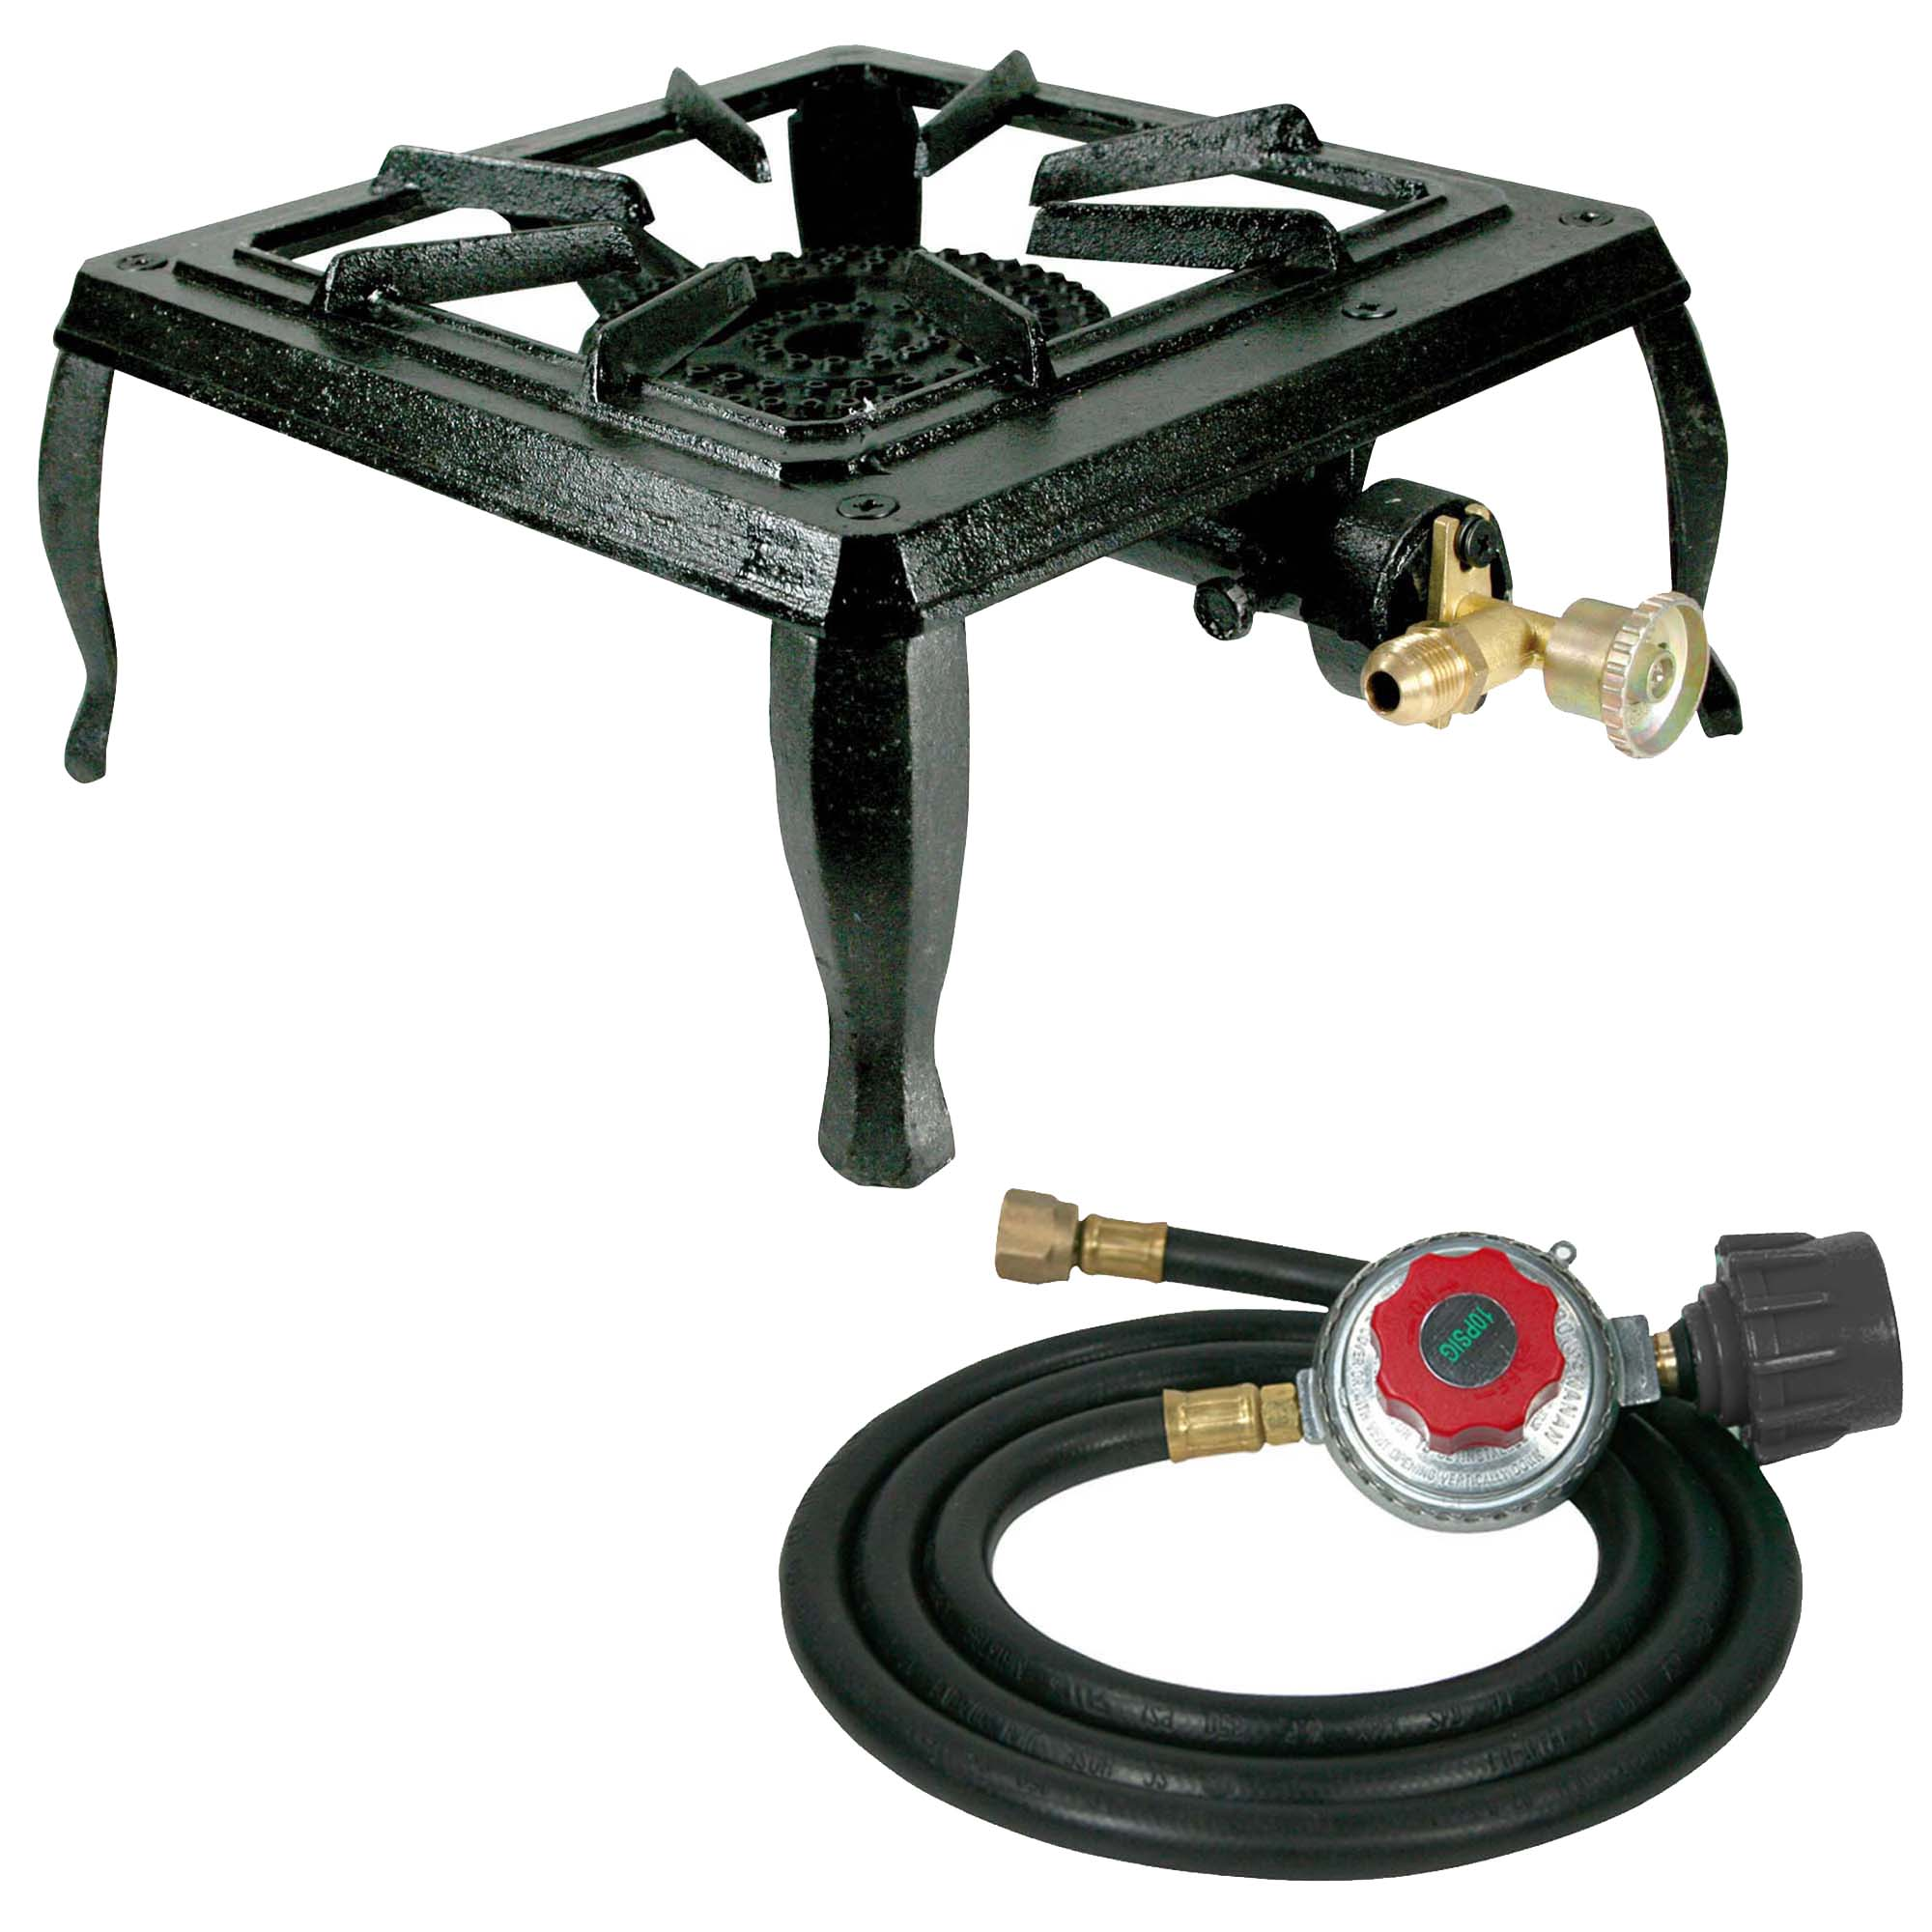 single gas stove burner. Shop Single Burner Cast Iron Stove With Regulator Hose - Free Shipping  Today Overstock.com 6782874 Single Gas Stove Burner